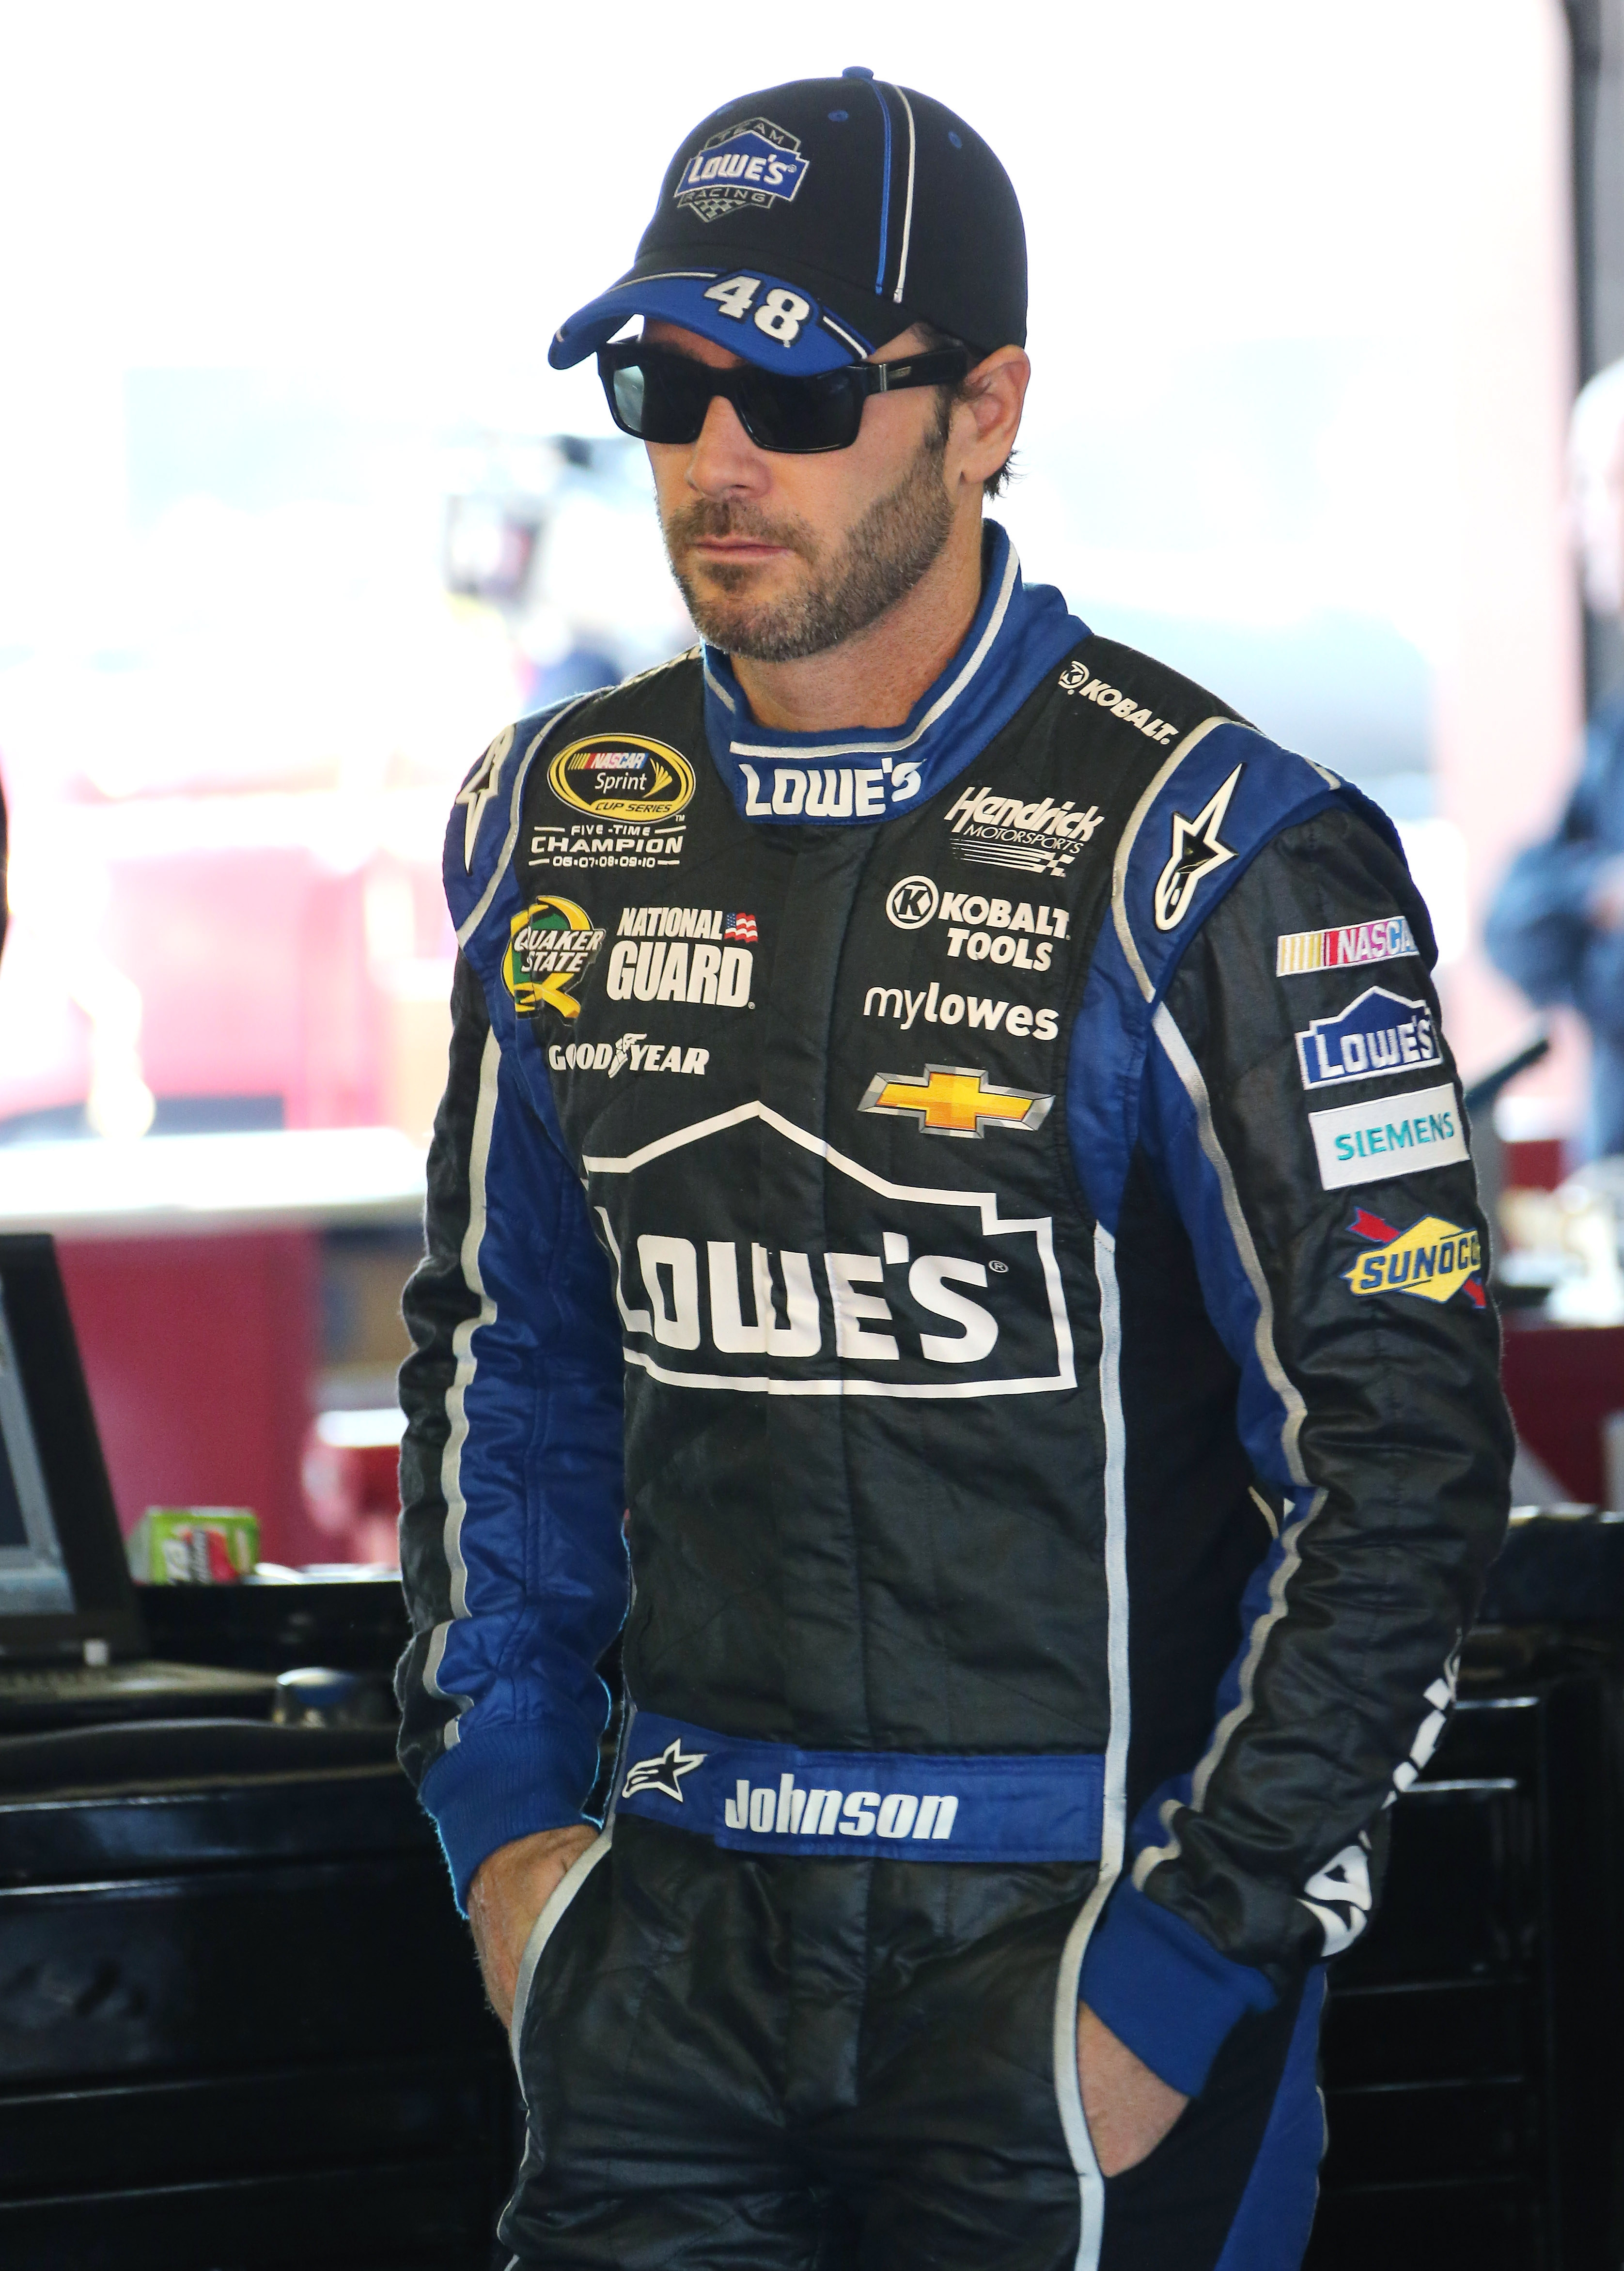 Jimmie Johnson has been atop the NASCAR Sprint Cup Series standings for all but a few weeks this season.